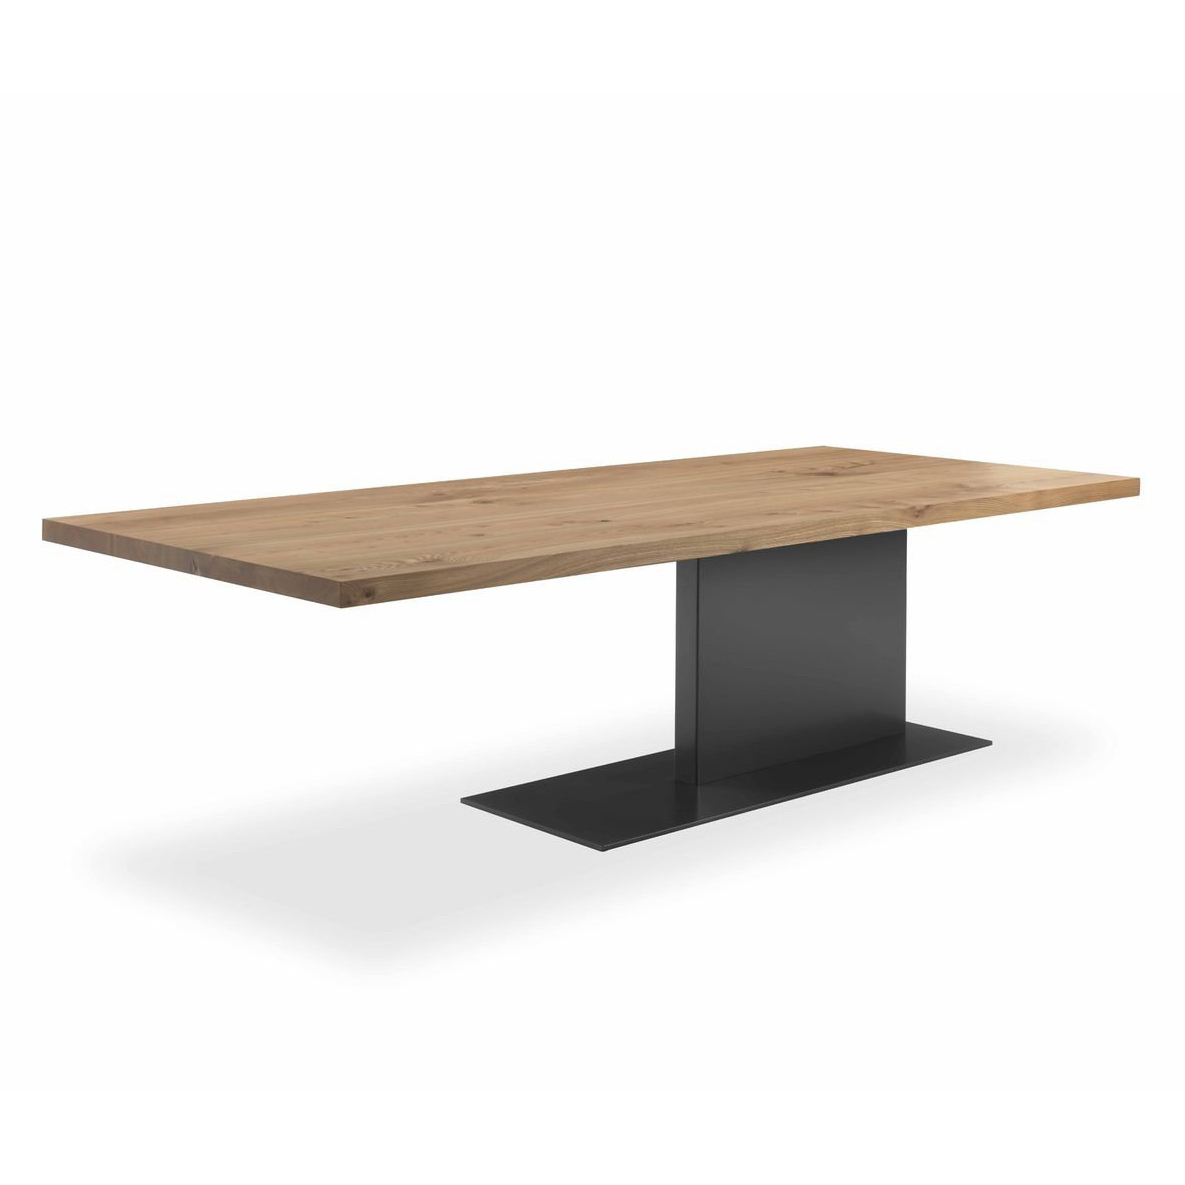 Contemporary Throughout Iron Wood Dining Tables (View 15 of 30)